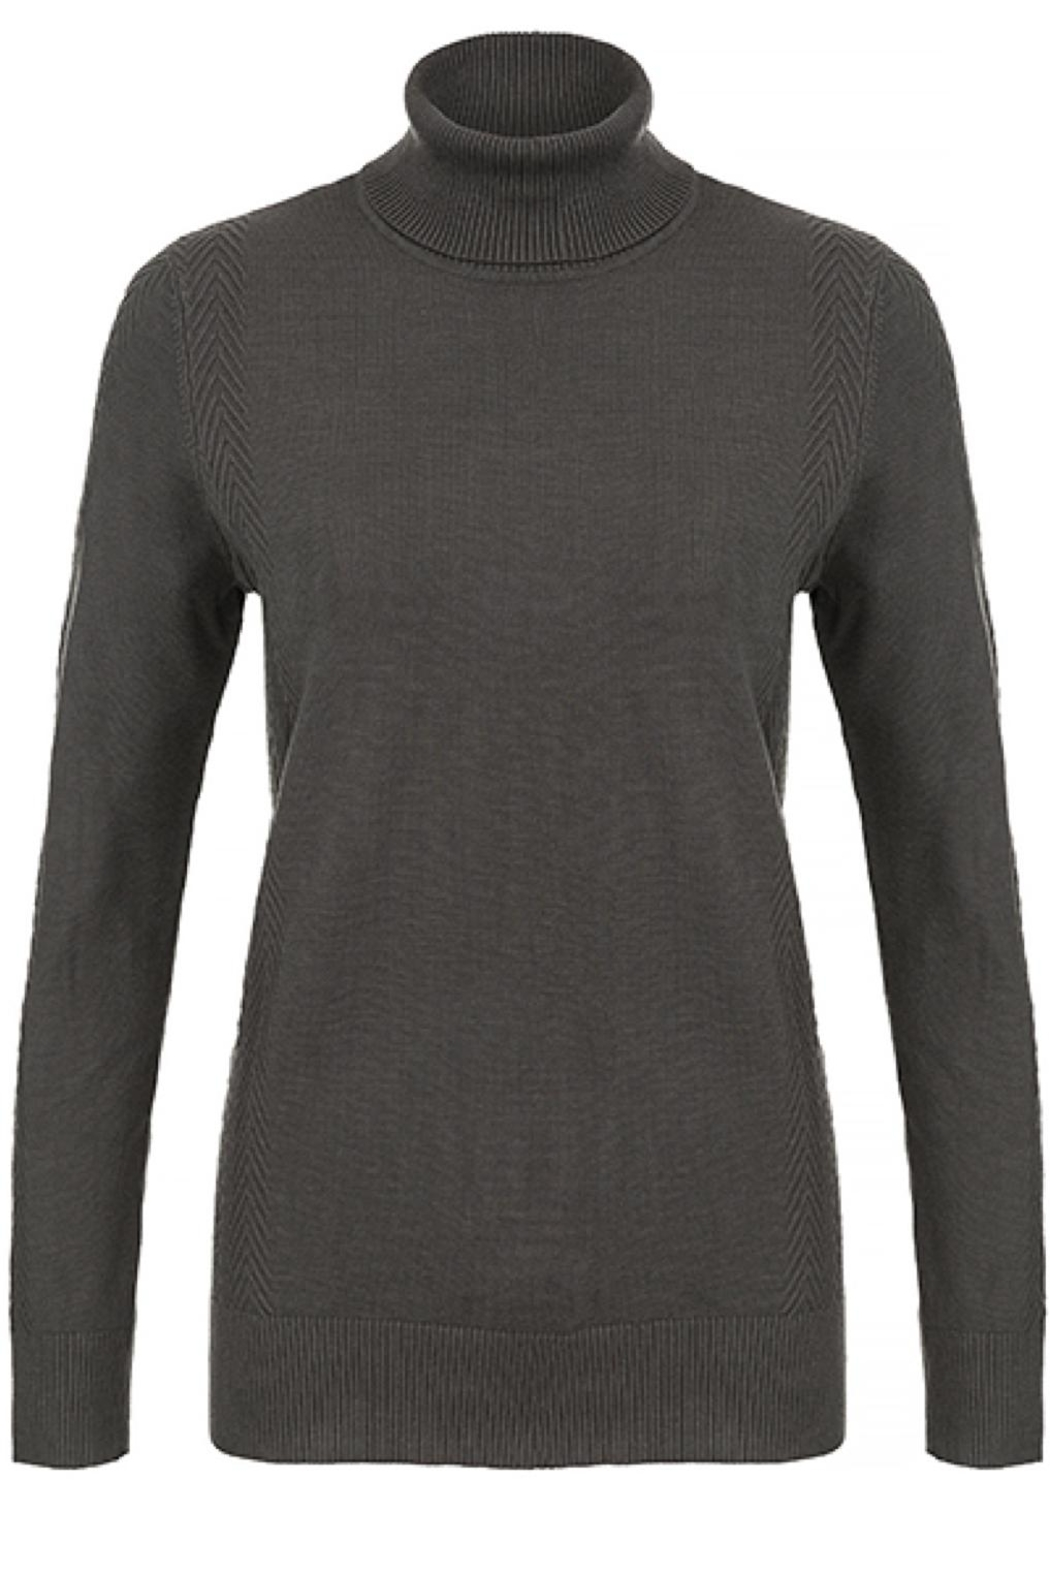 Tribal Grey Turtleneck Sweater - Front Cropped Image